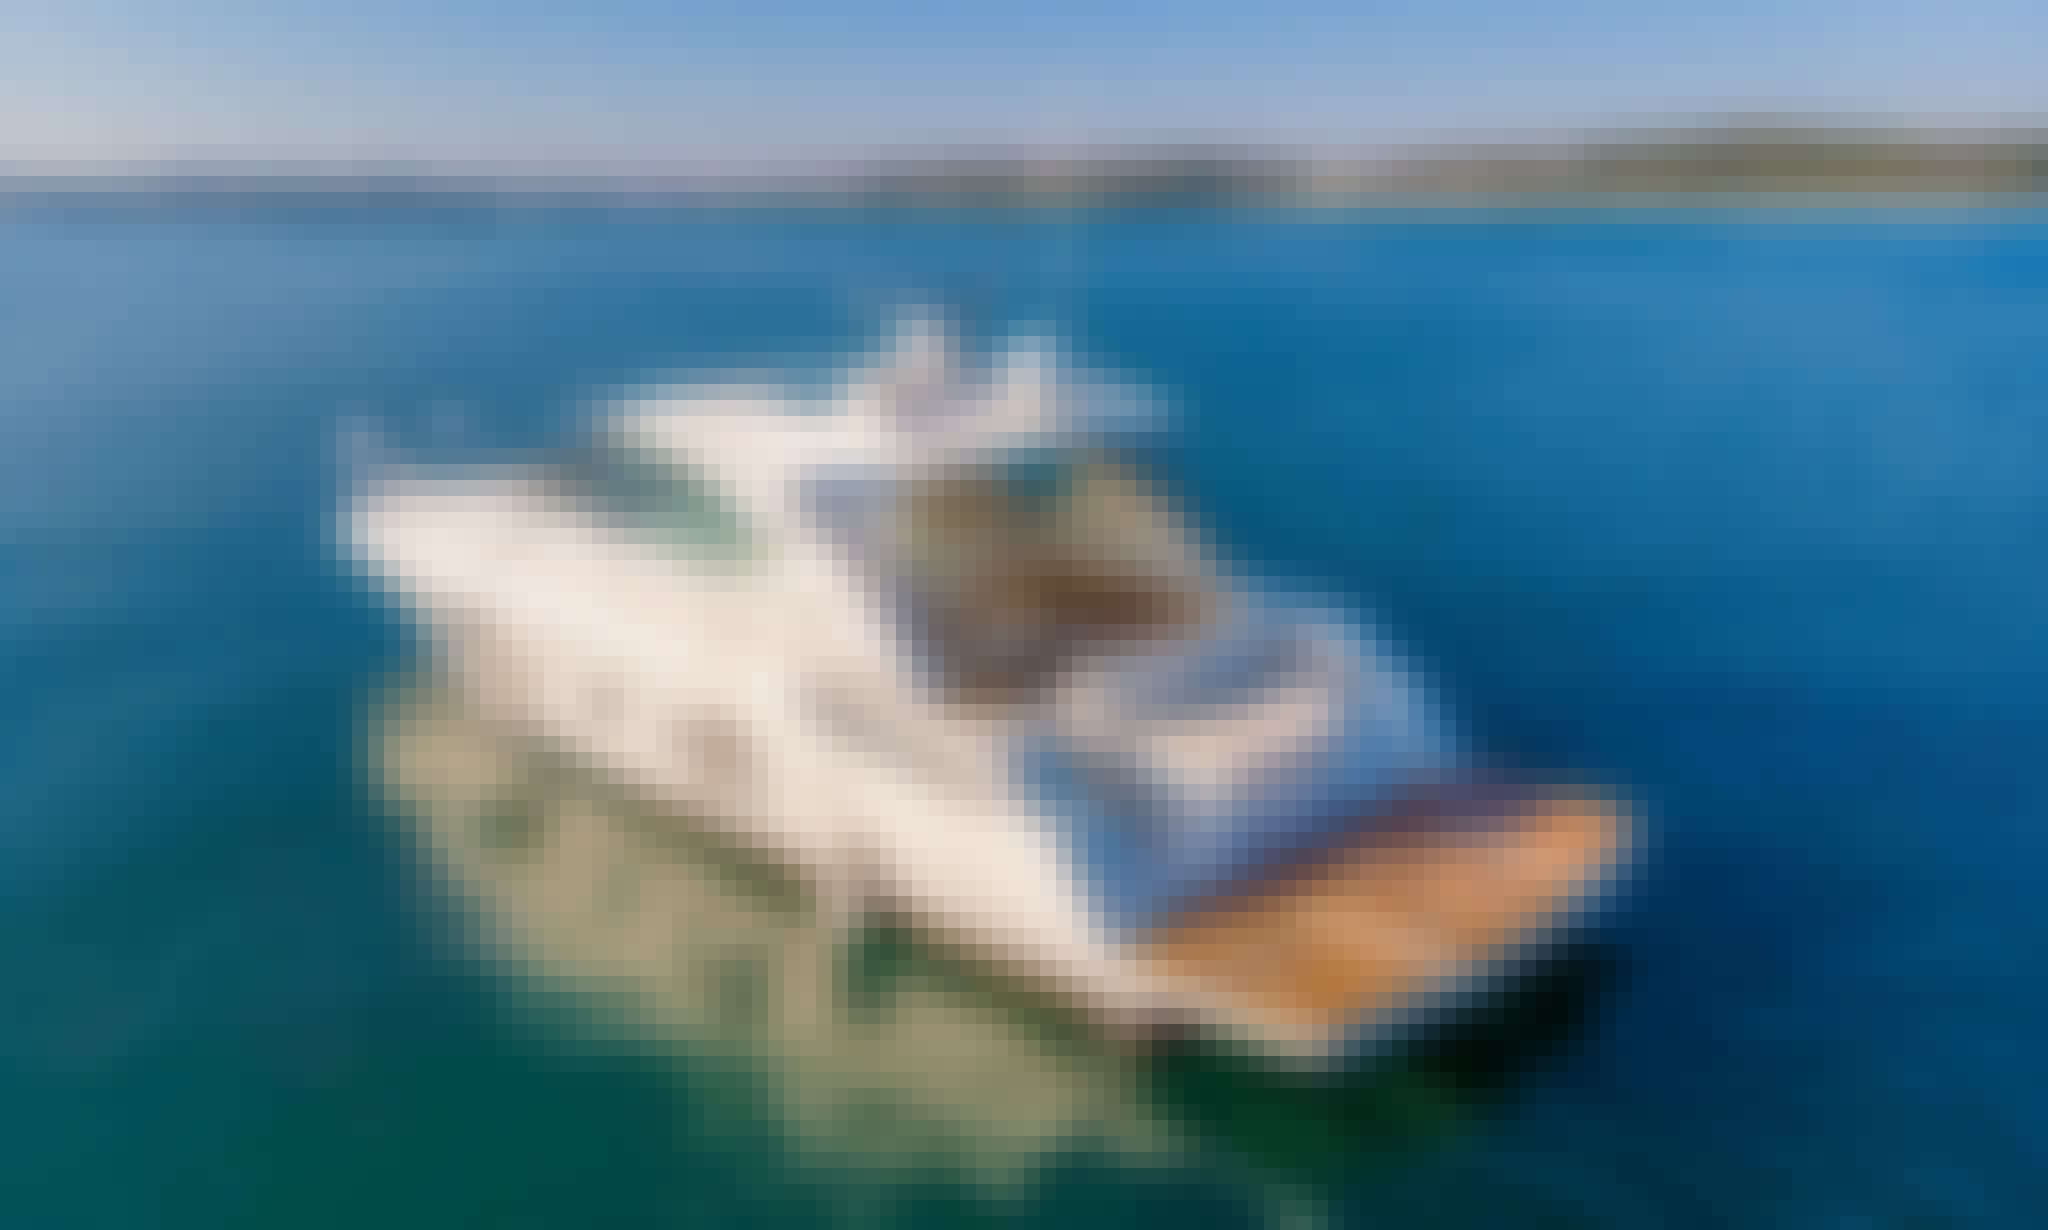 Yacht Charter | Chartered Yacht Rental | Austin Texas | Lake Travis